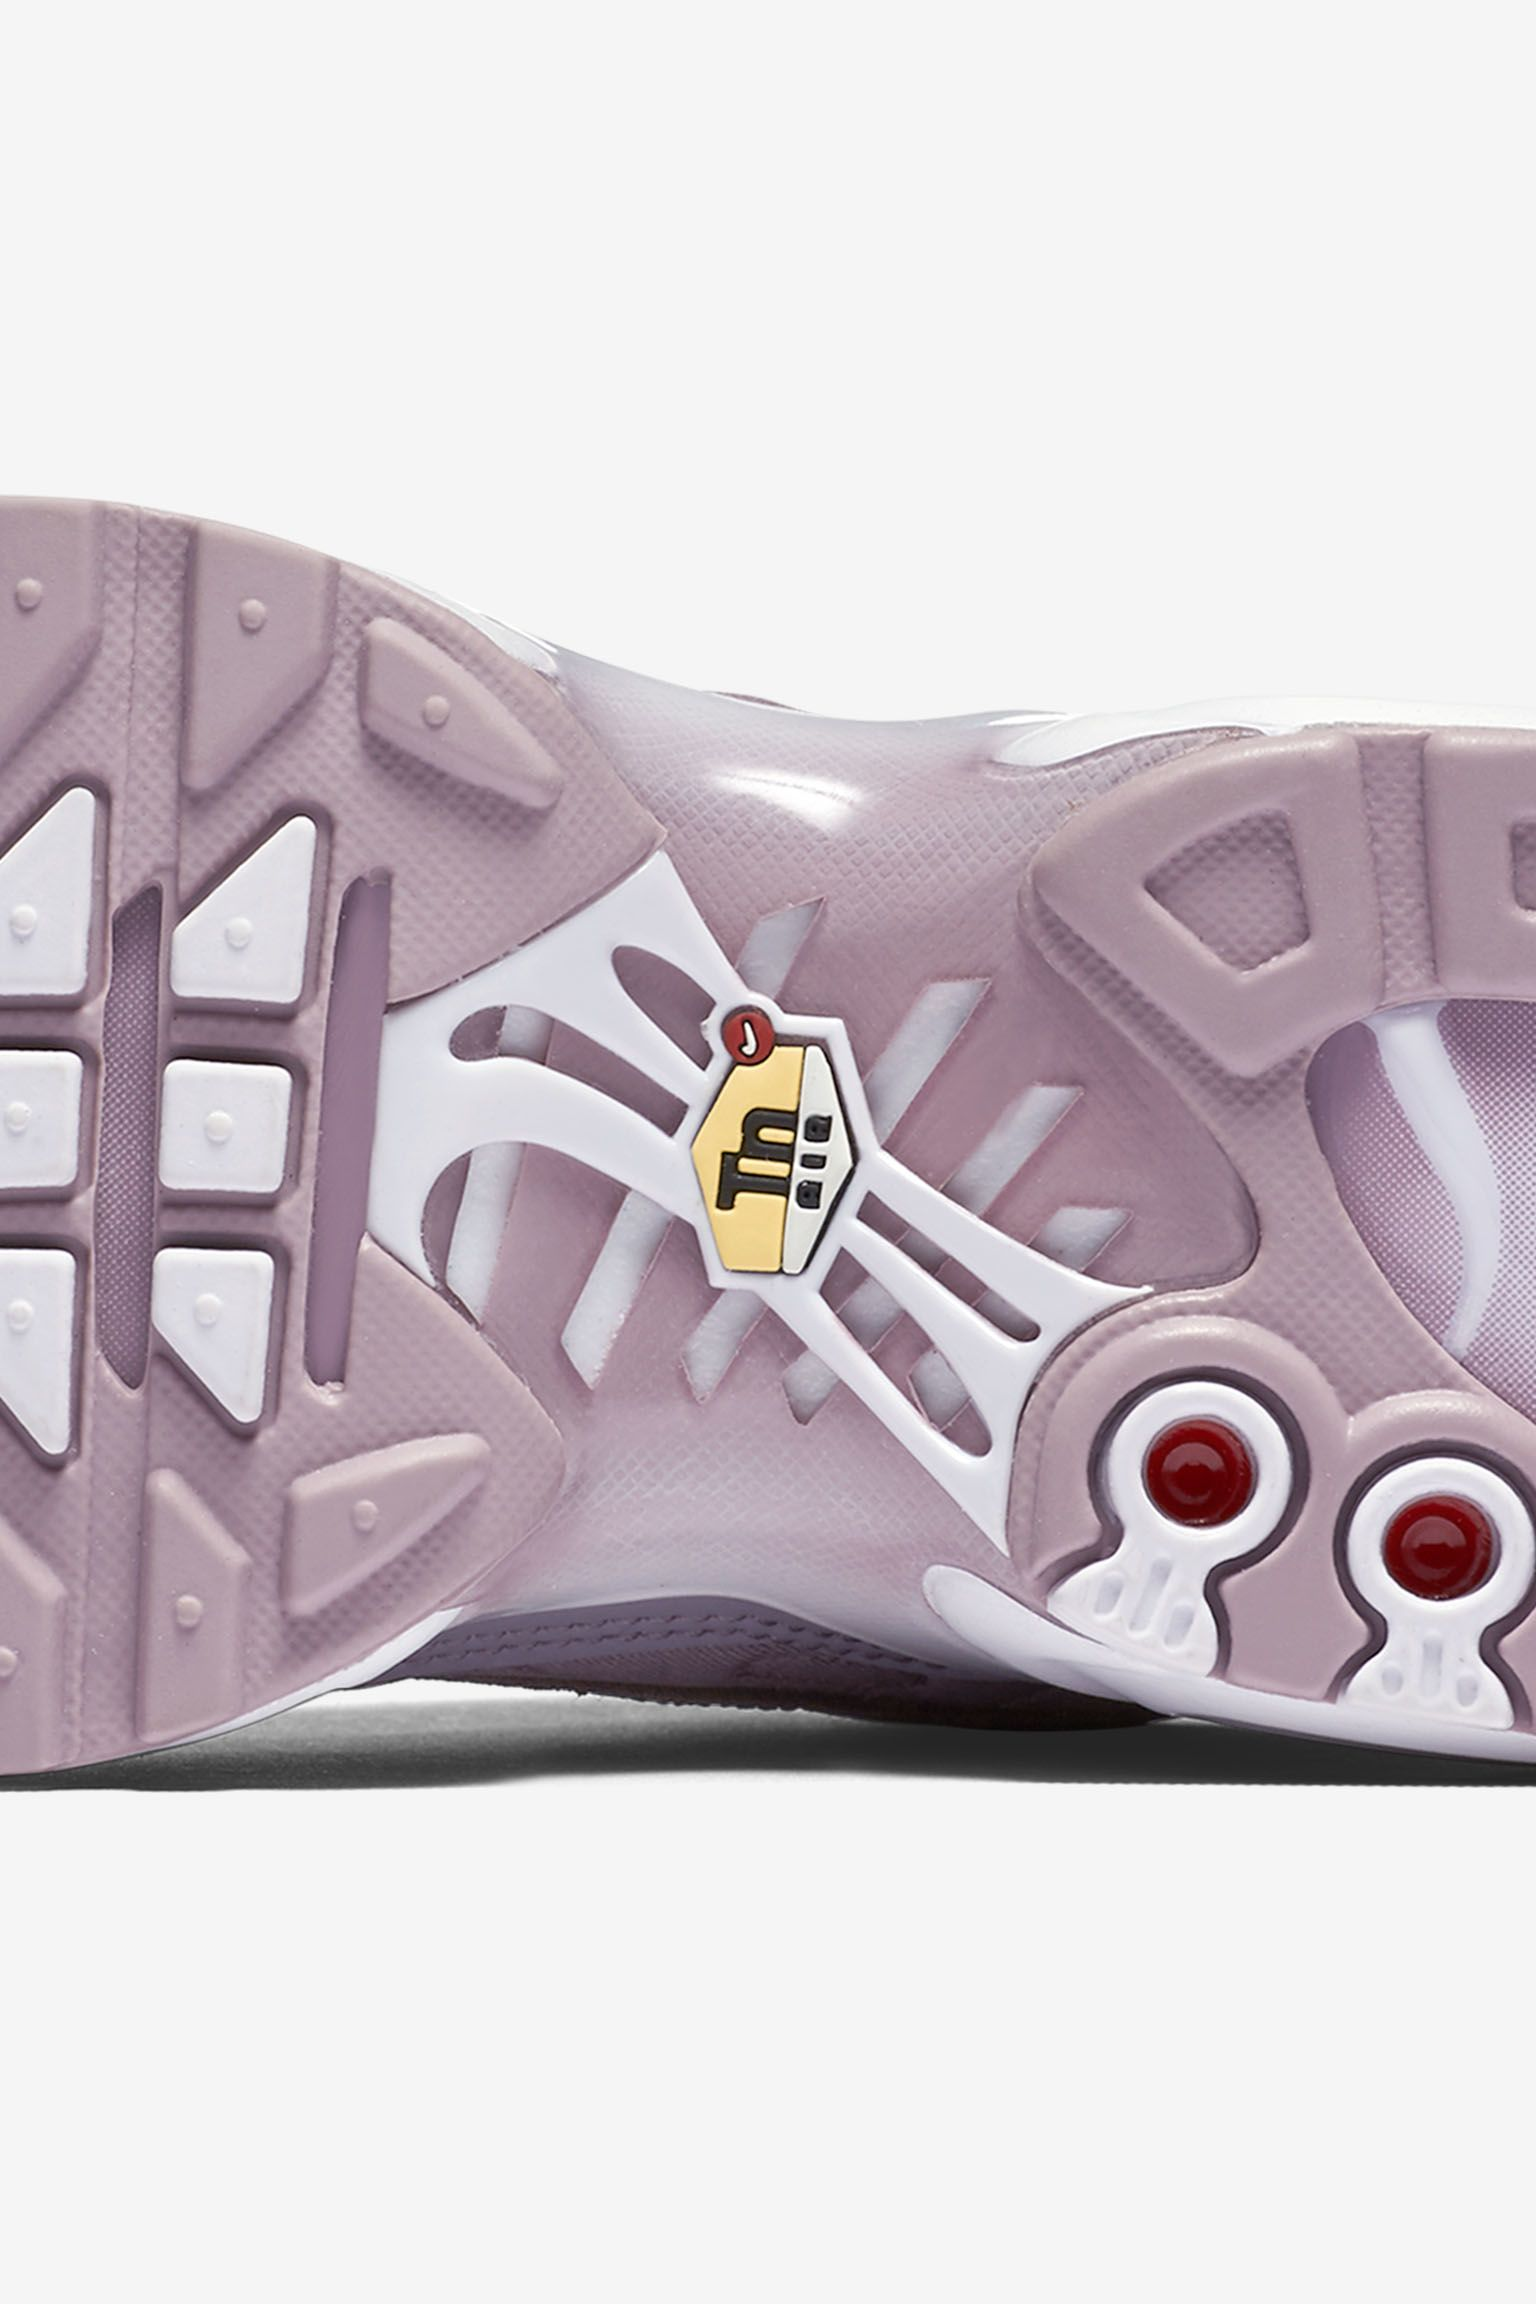 Women's Nike Air Max Plus 'Summer Satin' Lavender